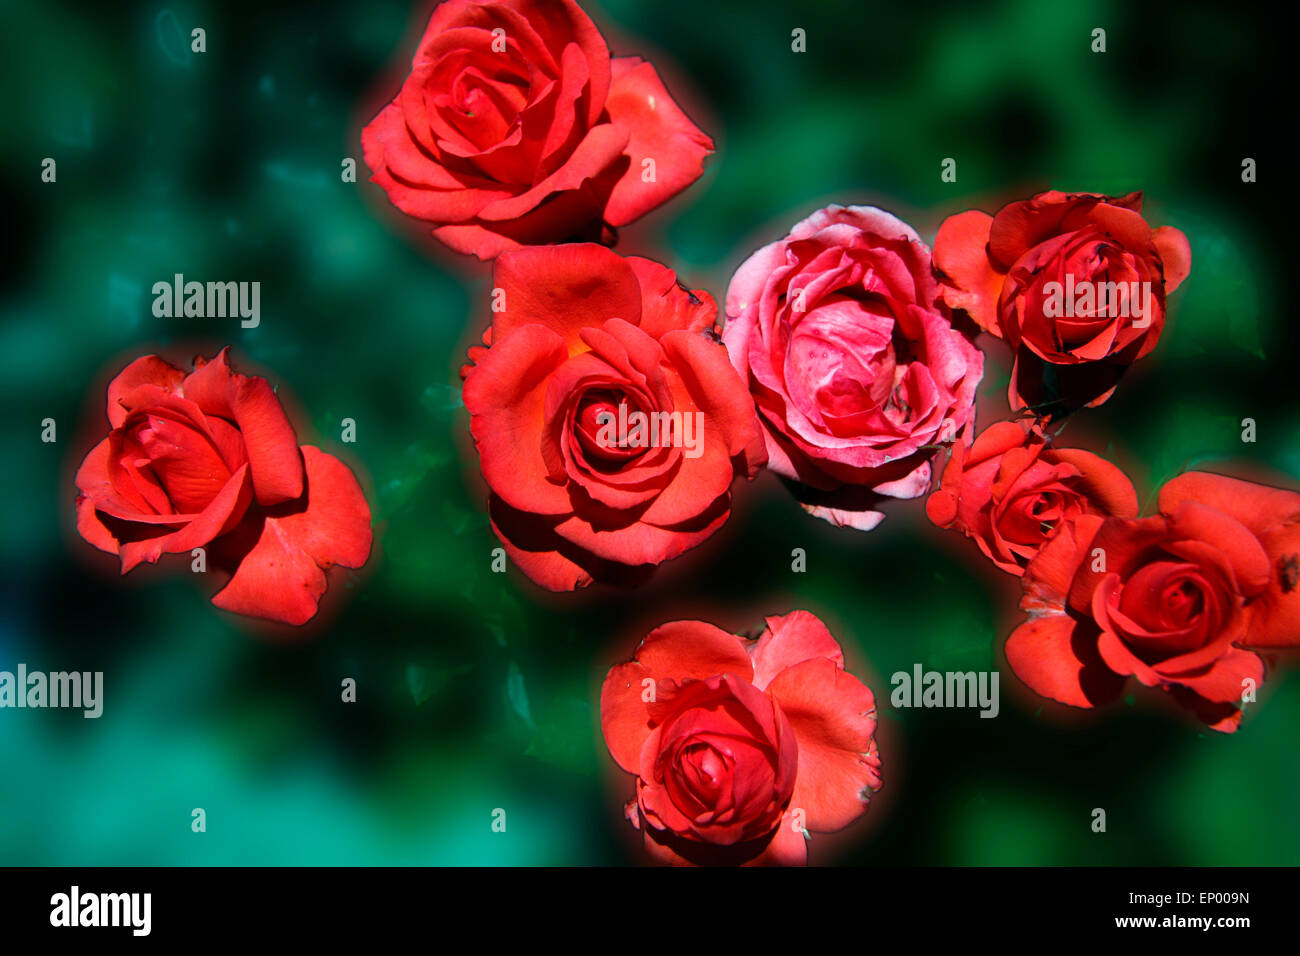 Rote Rosen   Symbolbild Liebe/ Valentinstag/ Red Rose   Symbolic Image For  Love, Afection And Valentines Day